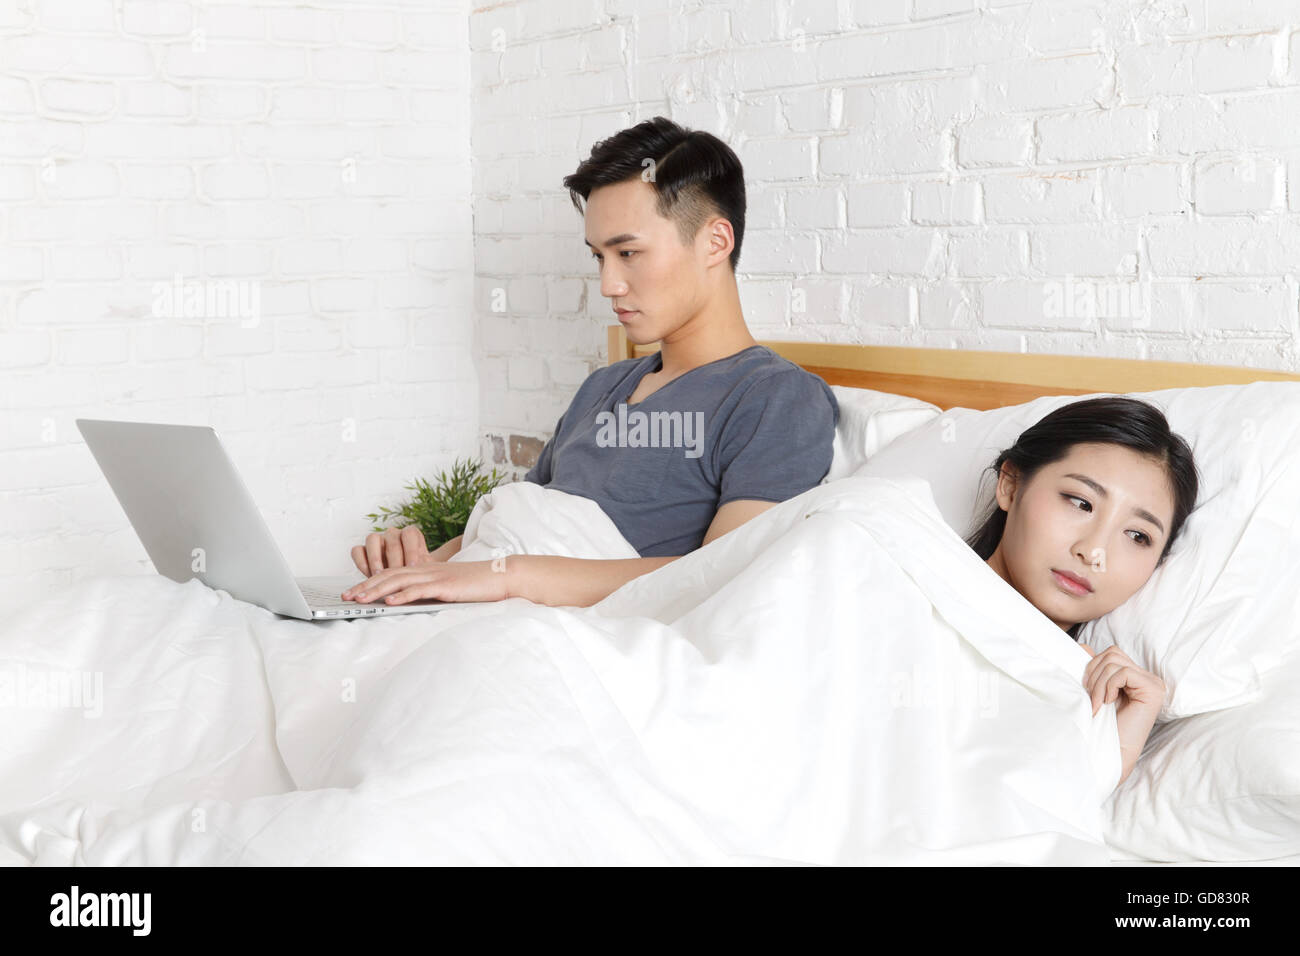 Relationship tension young couple - Stock Image